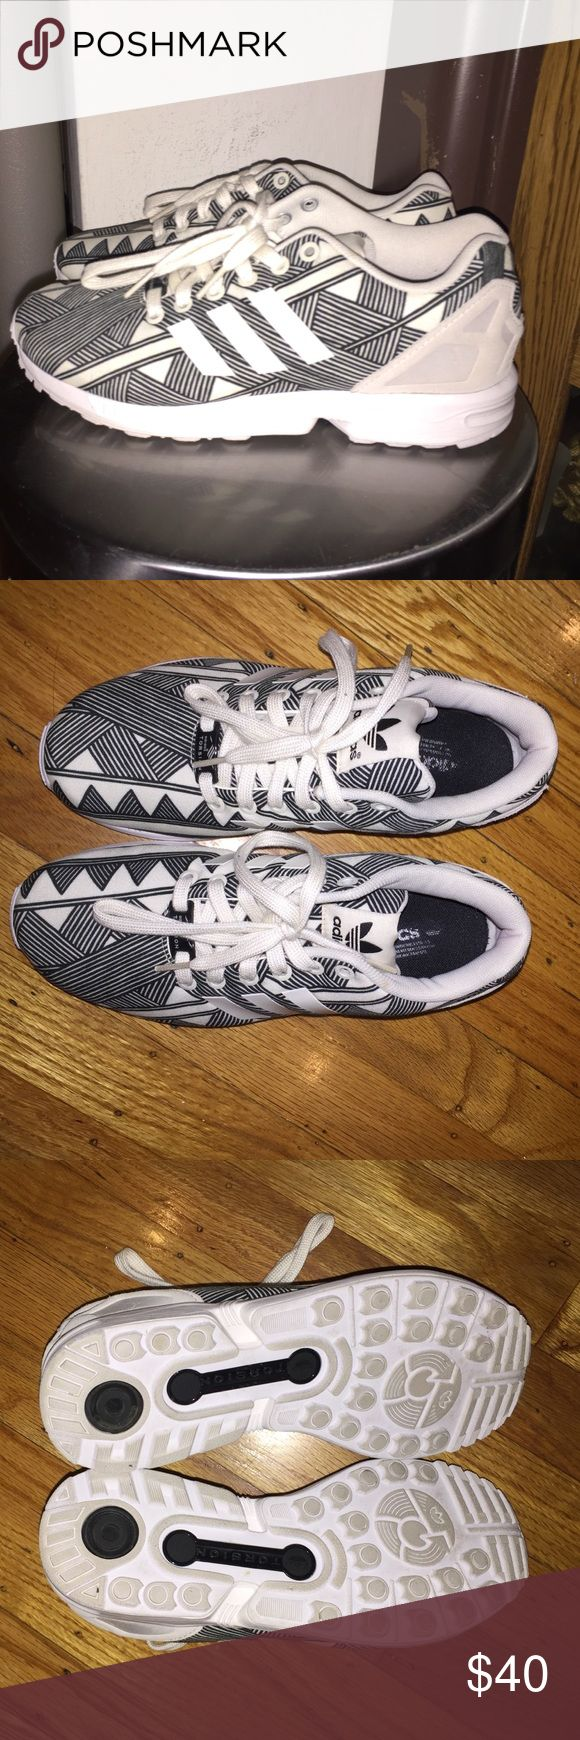 Adidas ZX Flux Torsion worn twice but they were a size too big lmao Adidas Shoes Sneakers